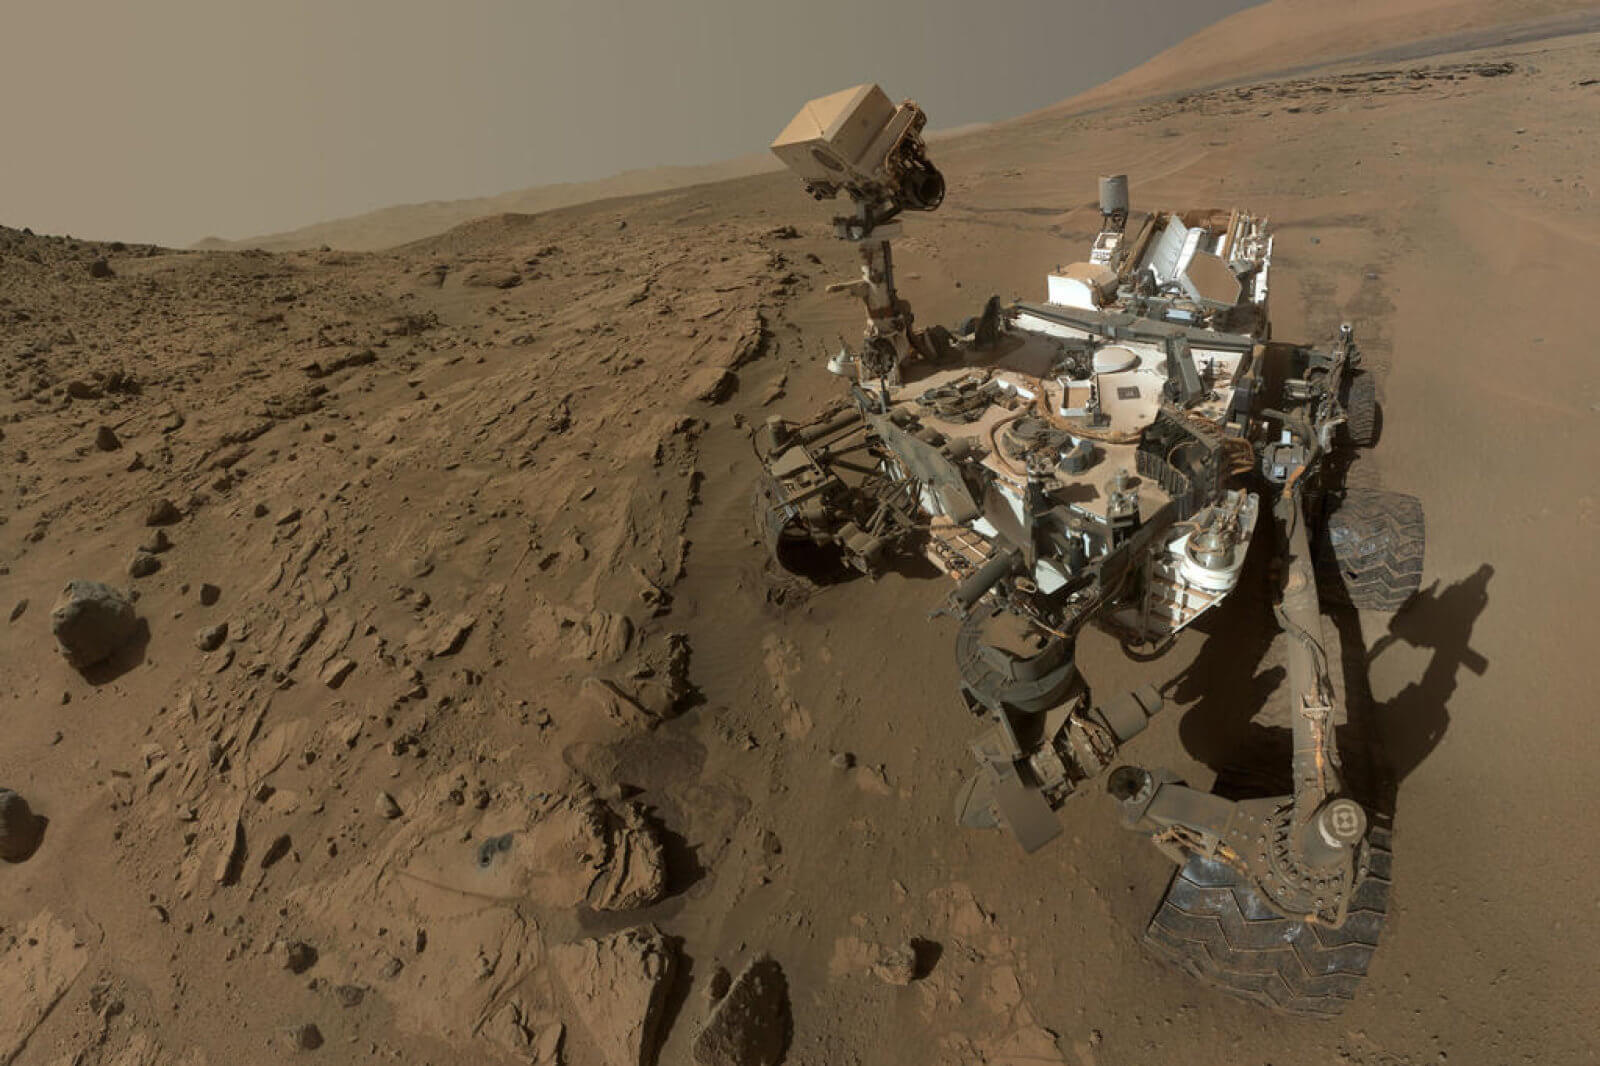 curiosity-methane-gas-on-mars